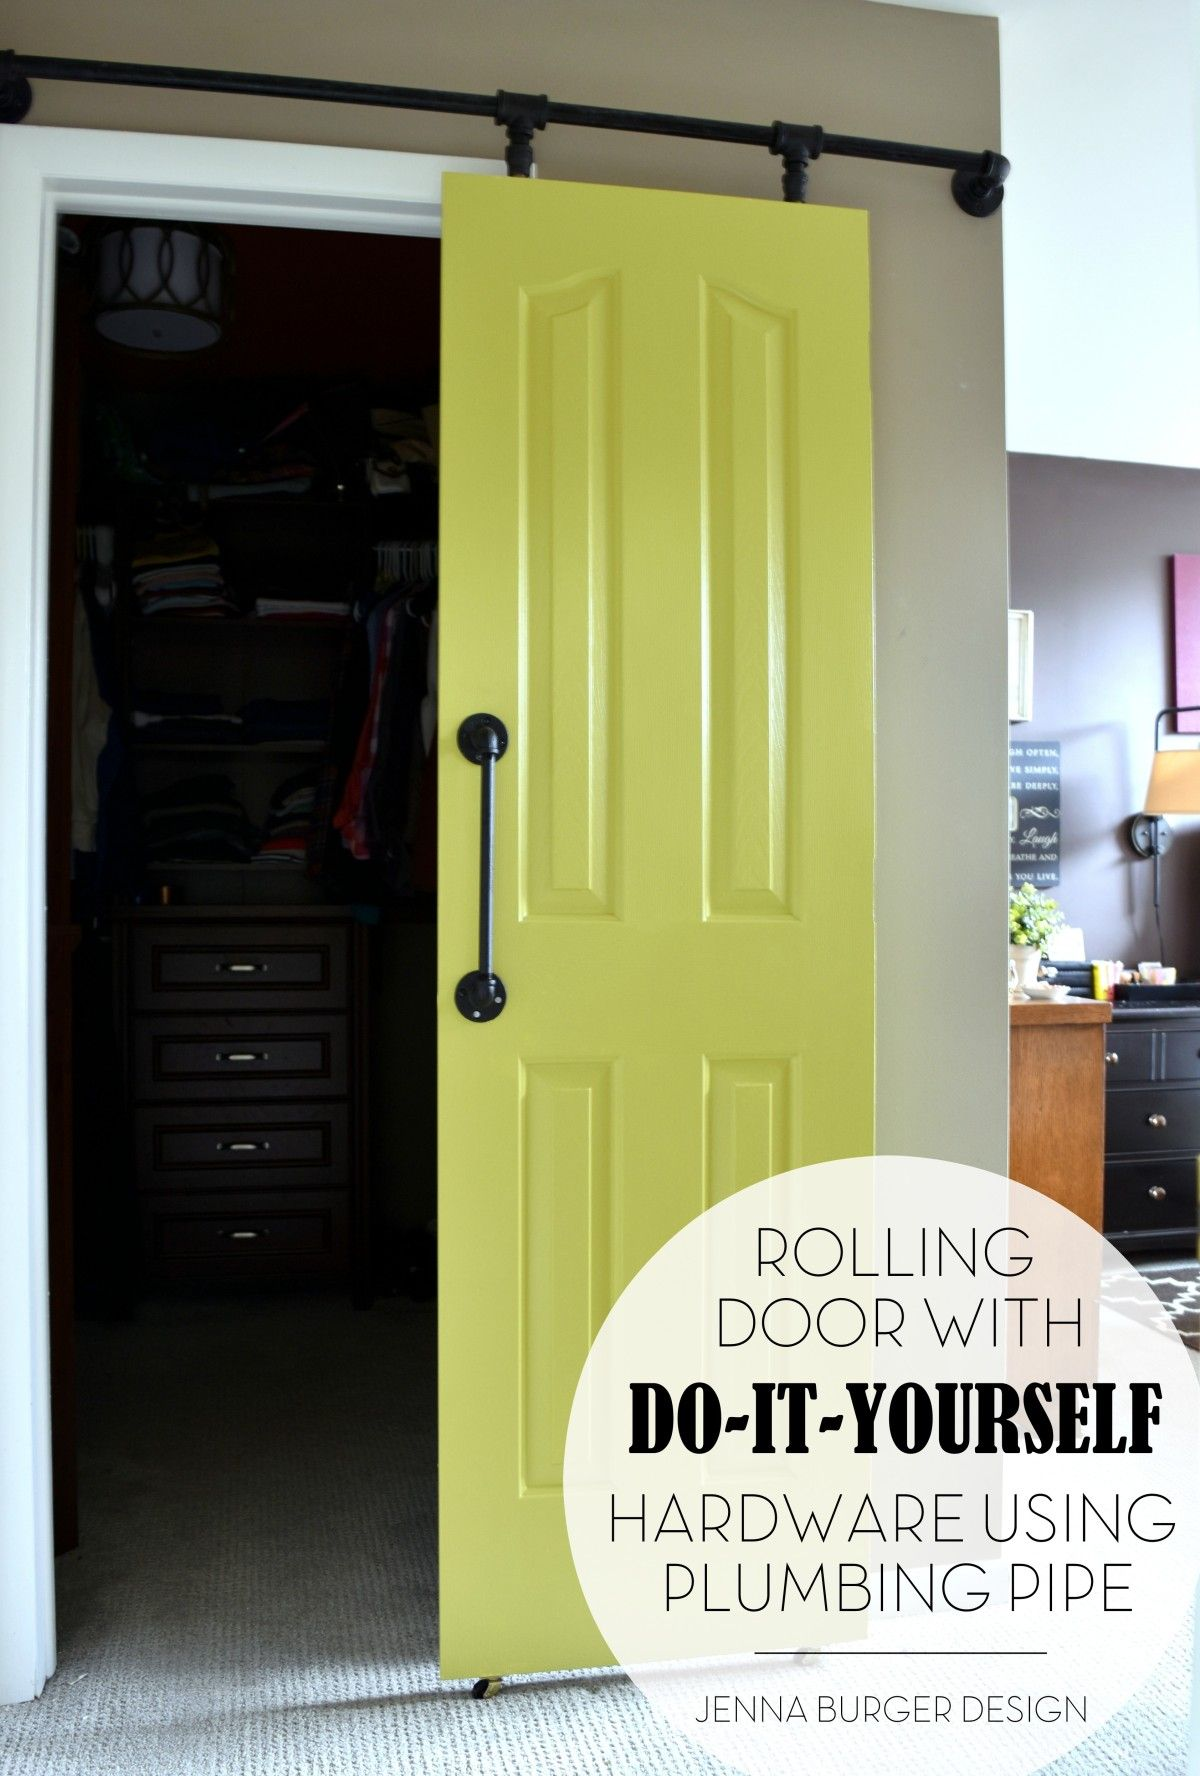 Diy rolling door hardware using plumbing pipe get the look diy rolling door hardware using plumbing pipe get the look function of a rolling door for about 60 custom size to fit your space tutorial by solutioingenieria Image collections